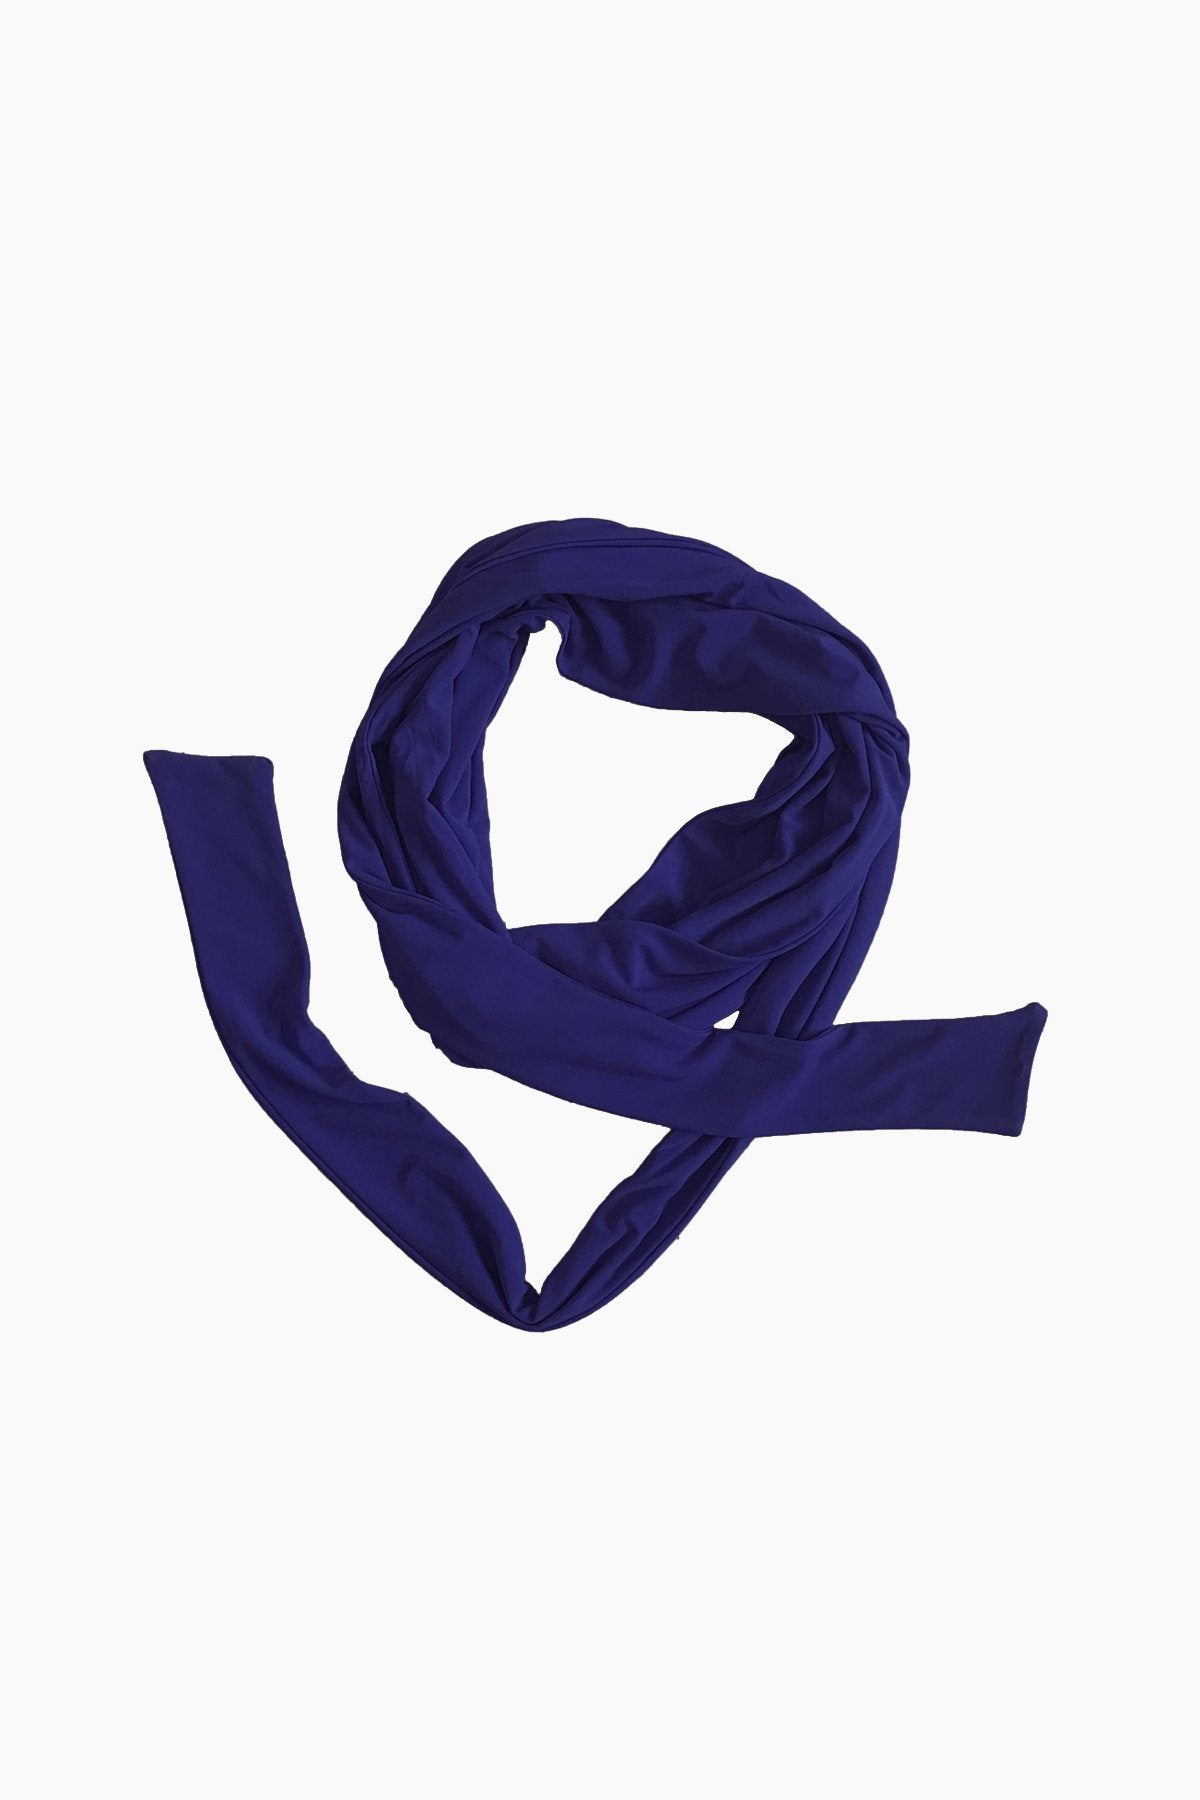 SASH dark blue